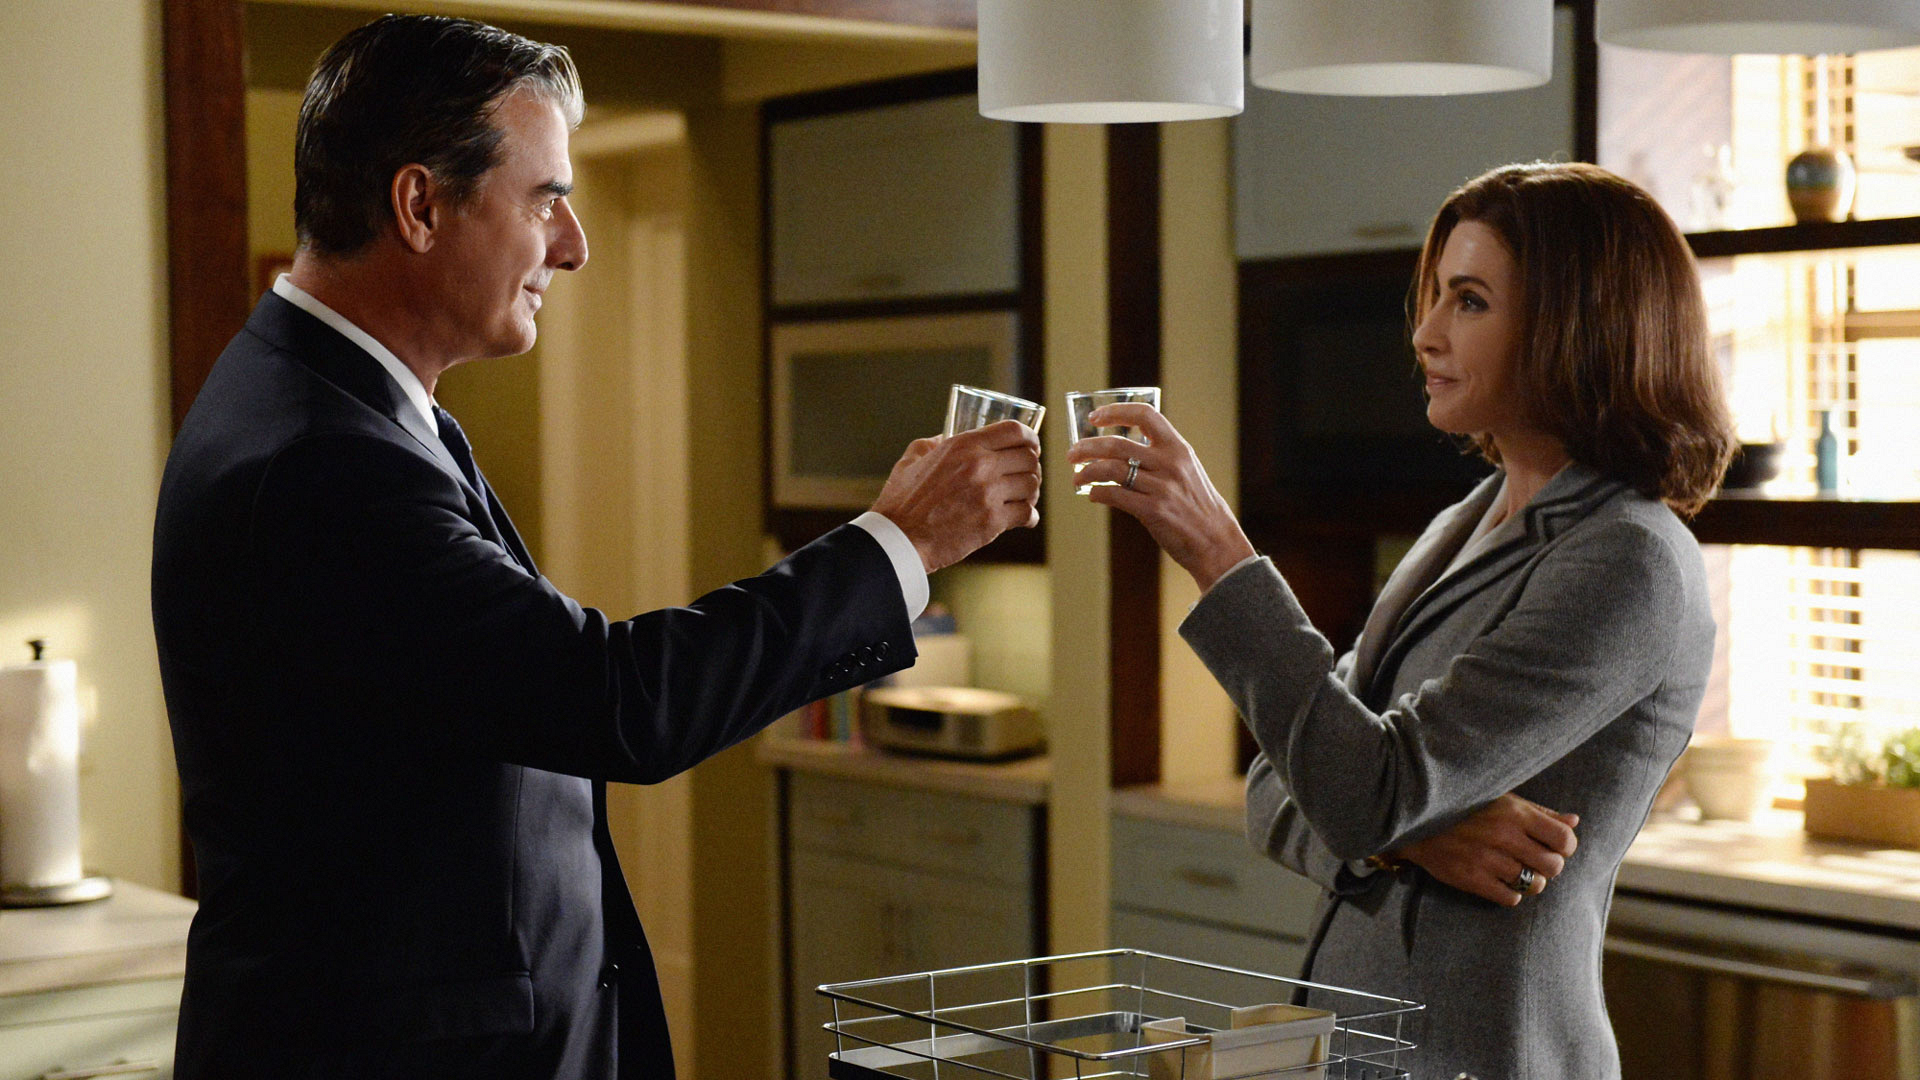 Chris Noth as Peter Florrick and Julianna Margulies as Alicia Florrick